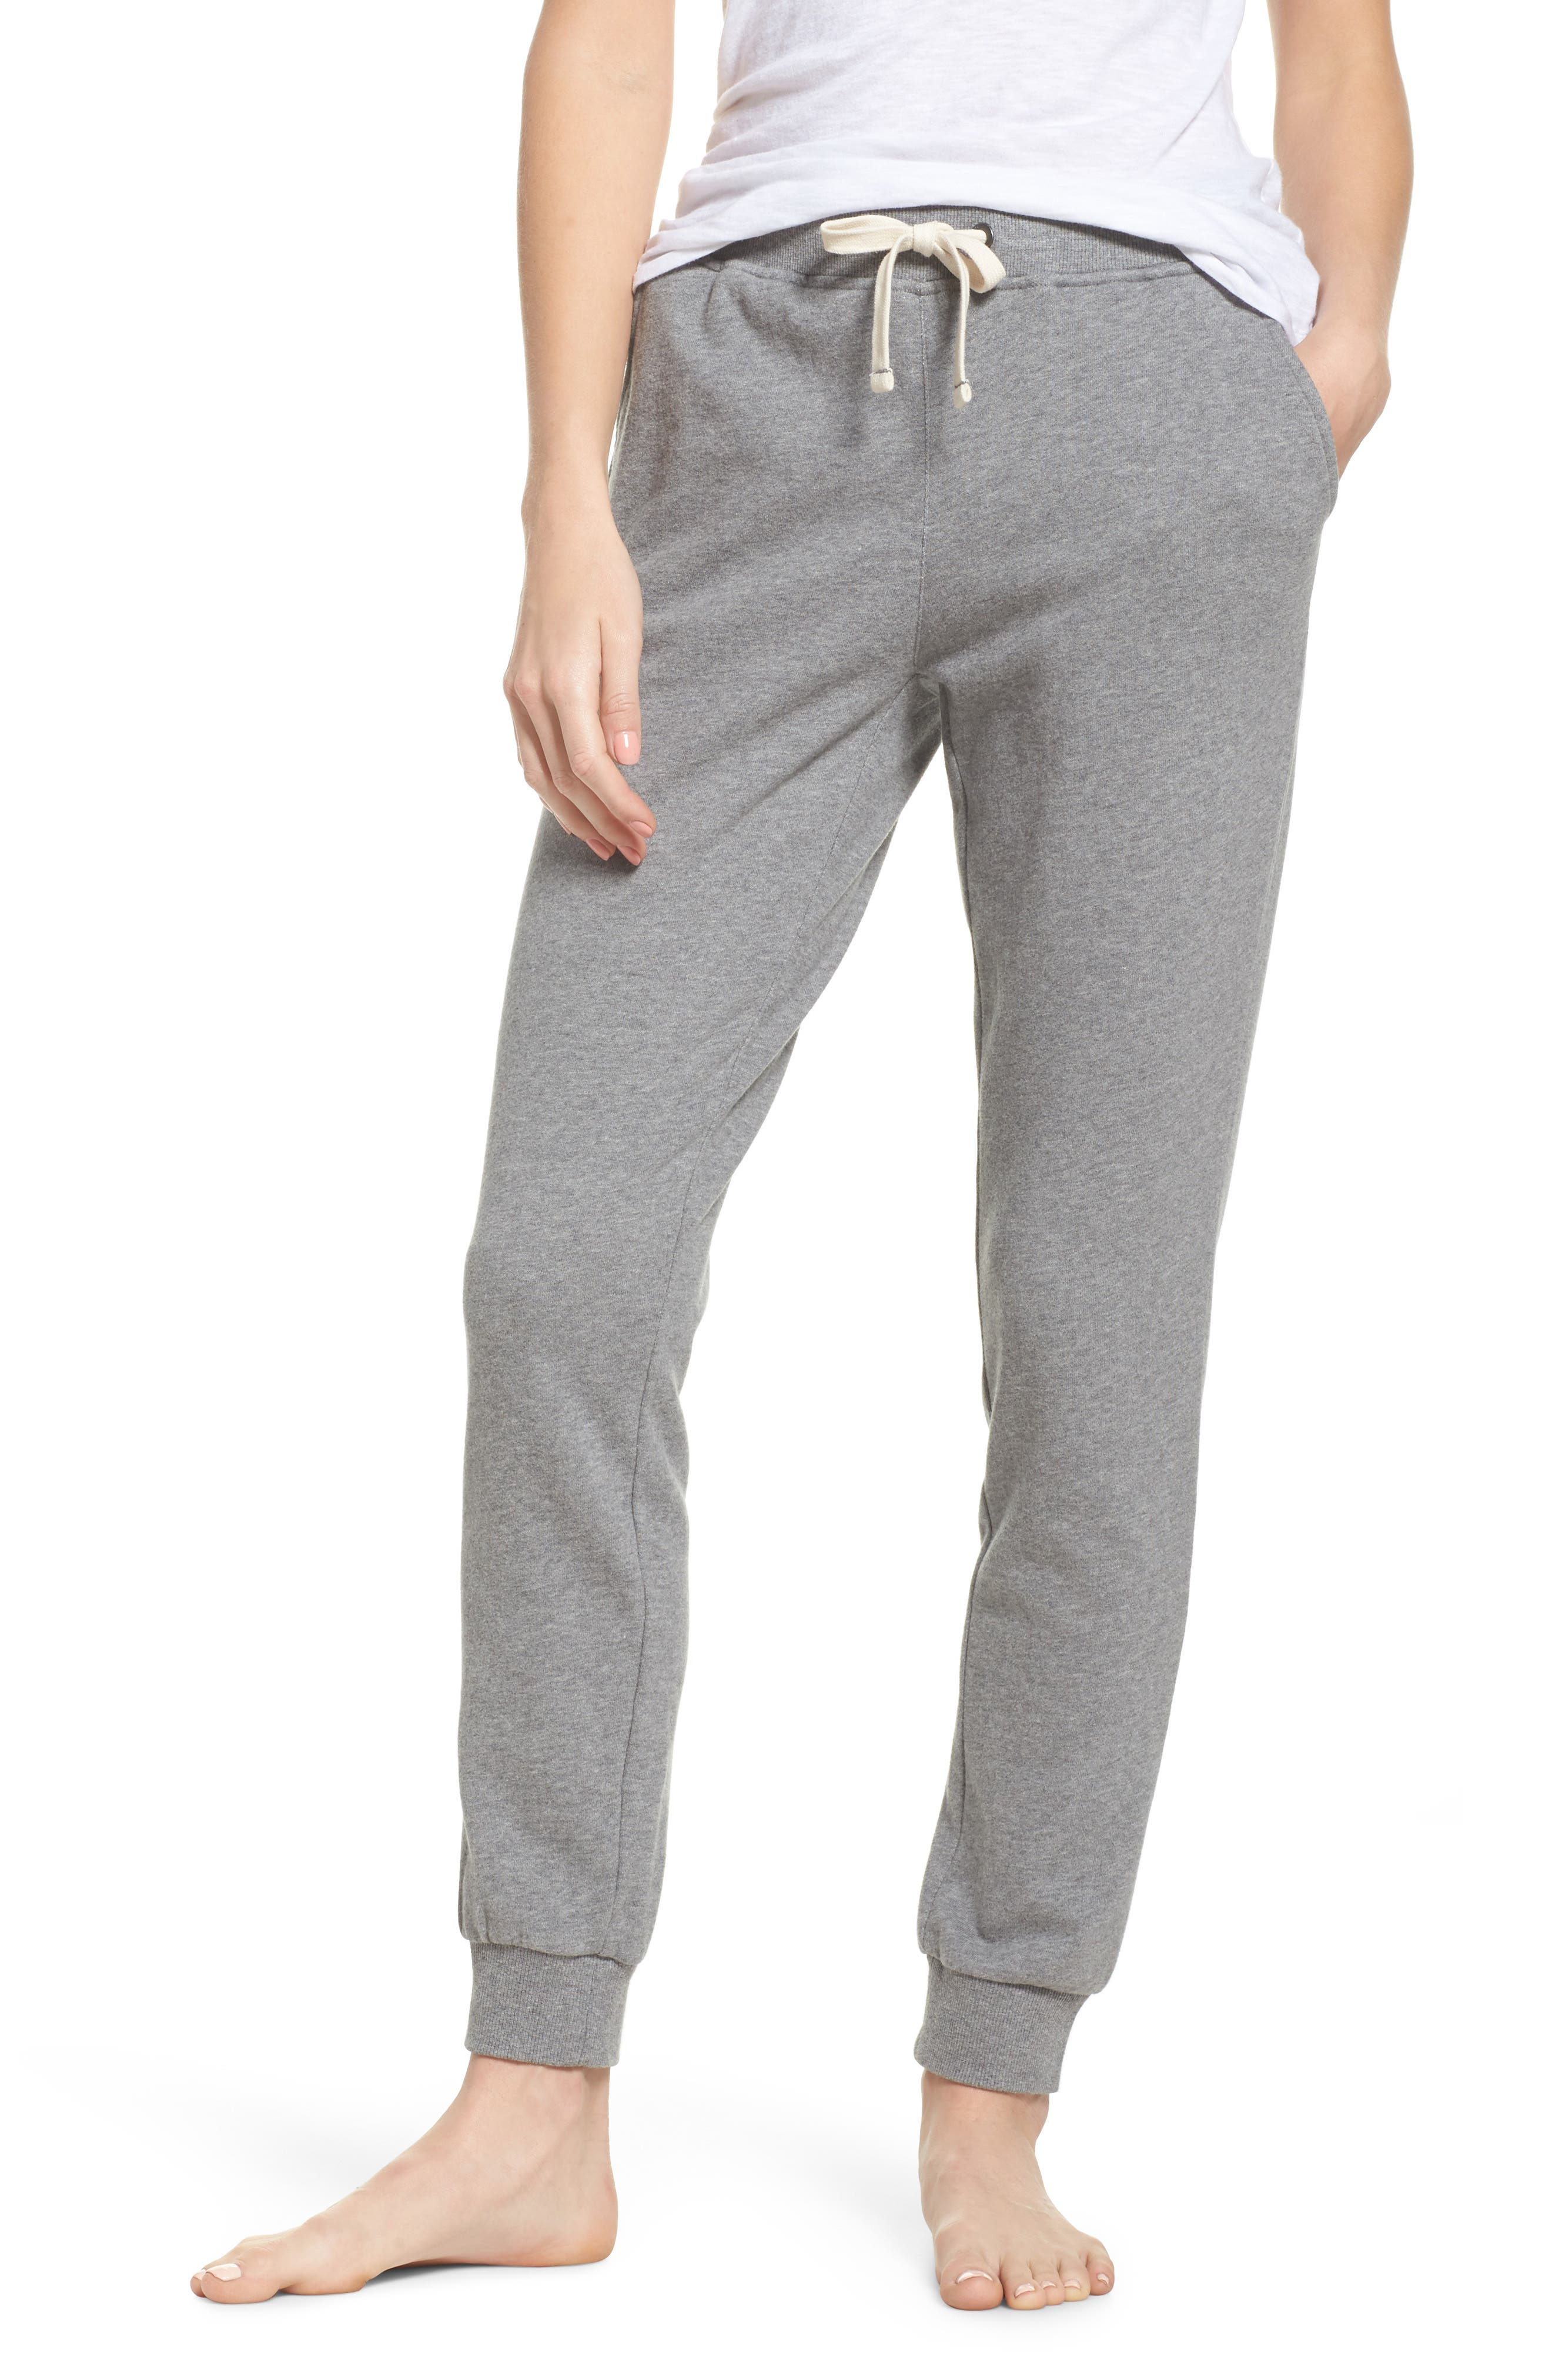 Babe Jogger Pants,                         Main,                         color, Heather Grey